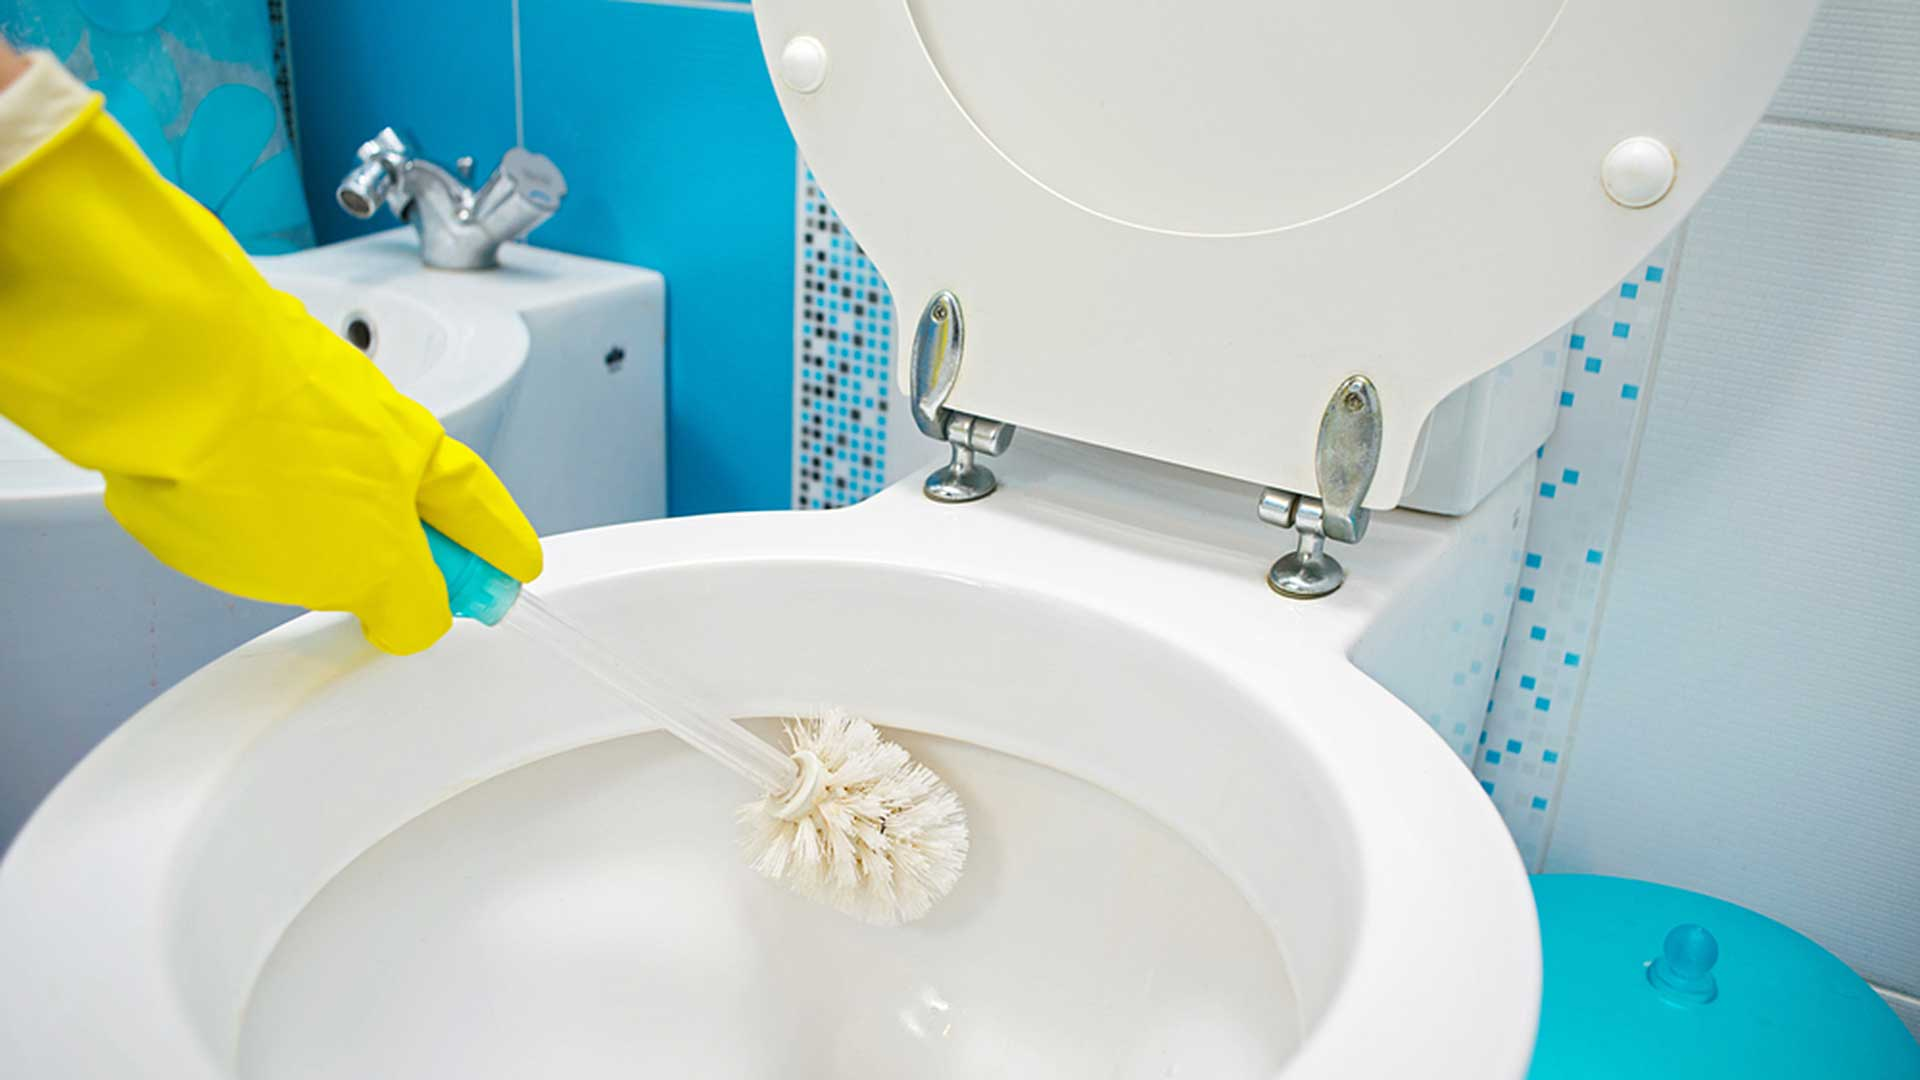 cleaning toilet with brush